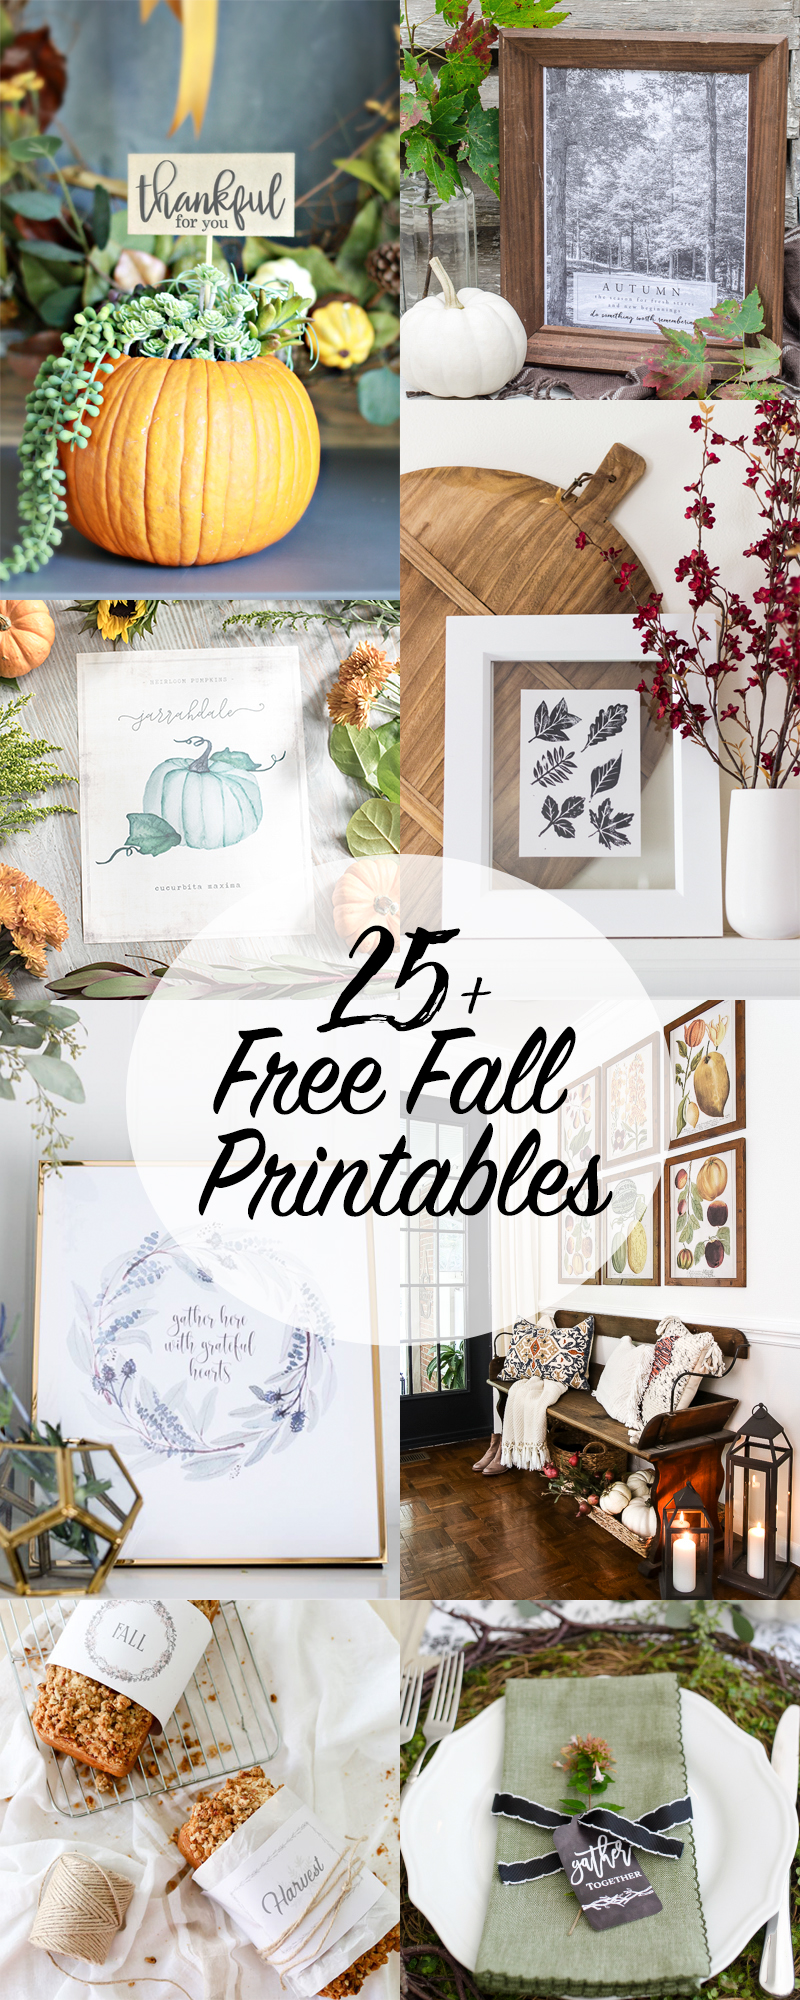 Over 25 Free Fall Printables